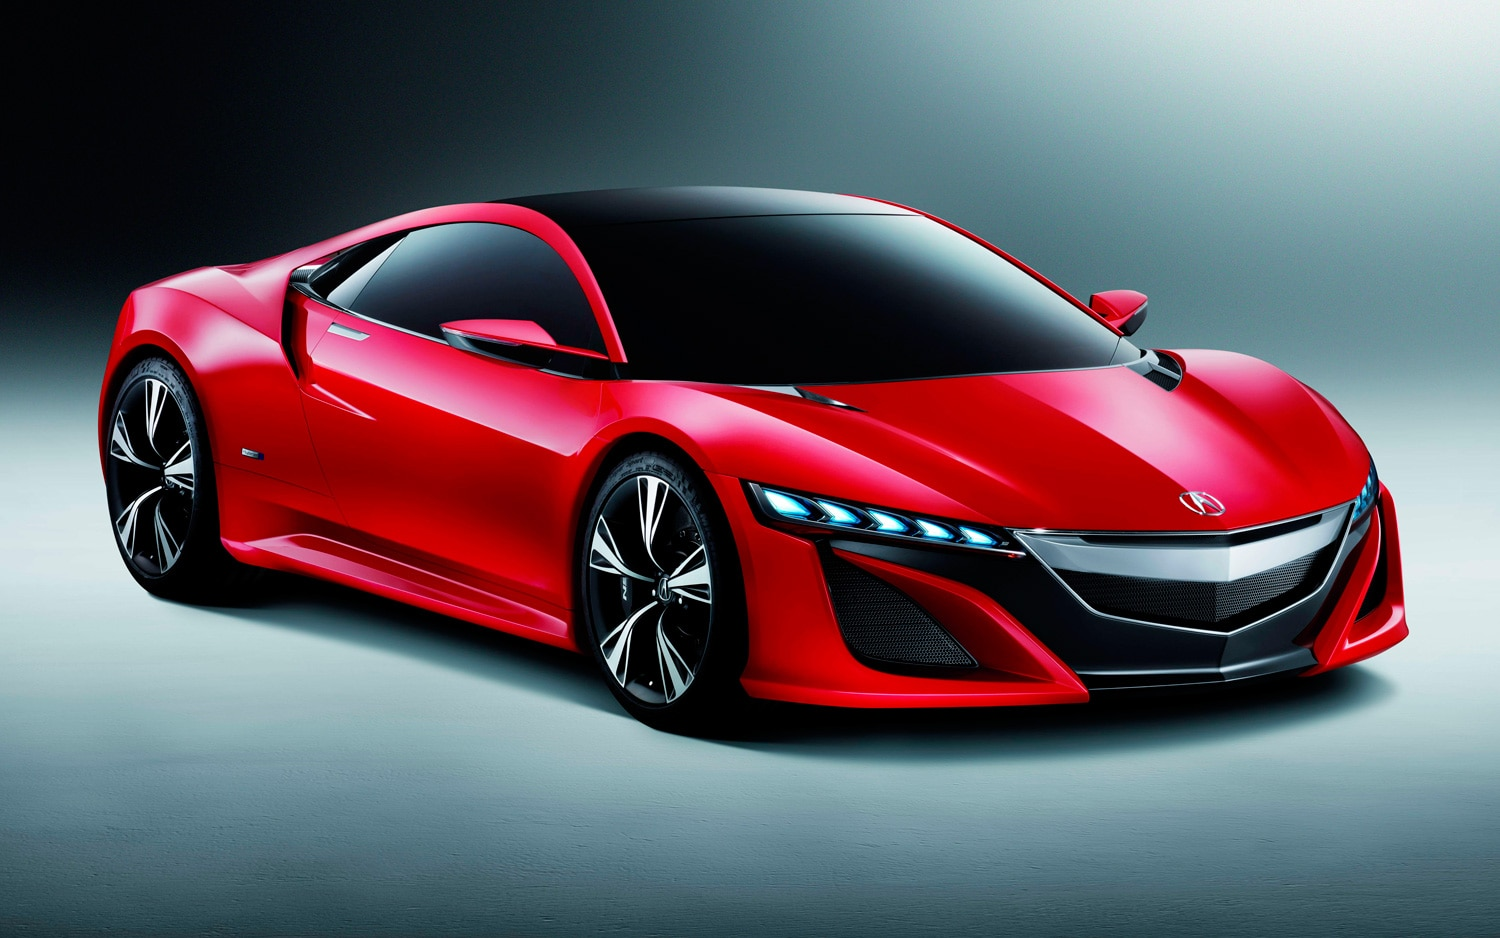 Acura NSX Concept Front View In Red1